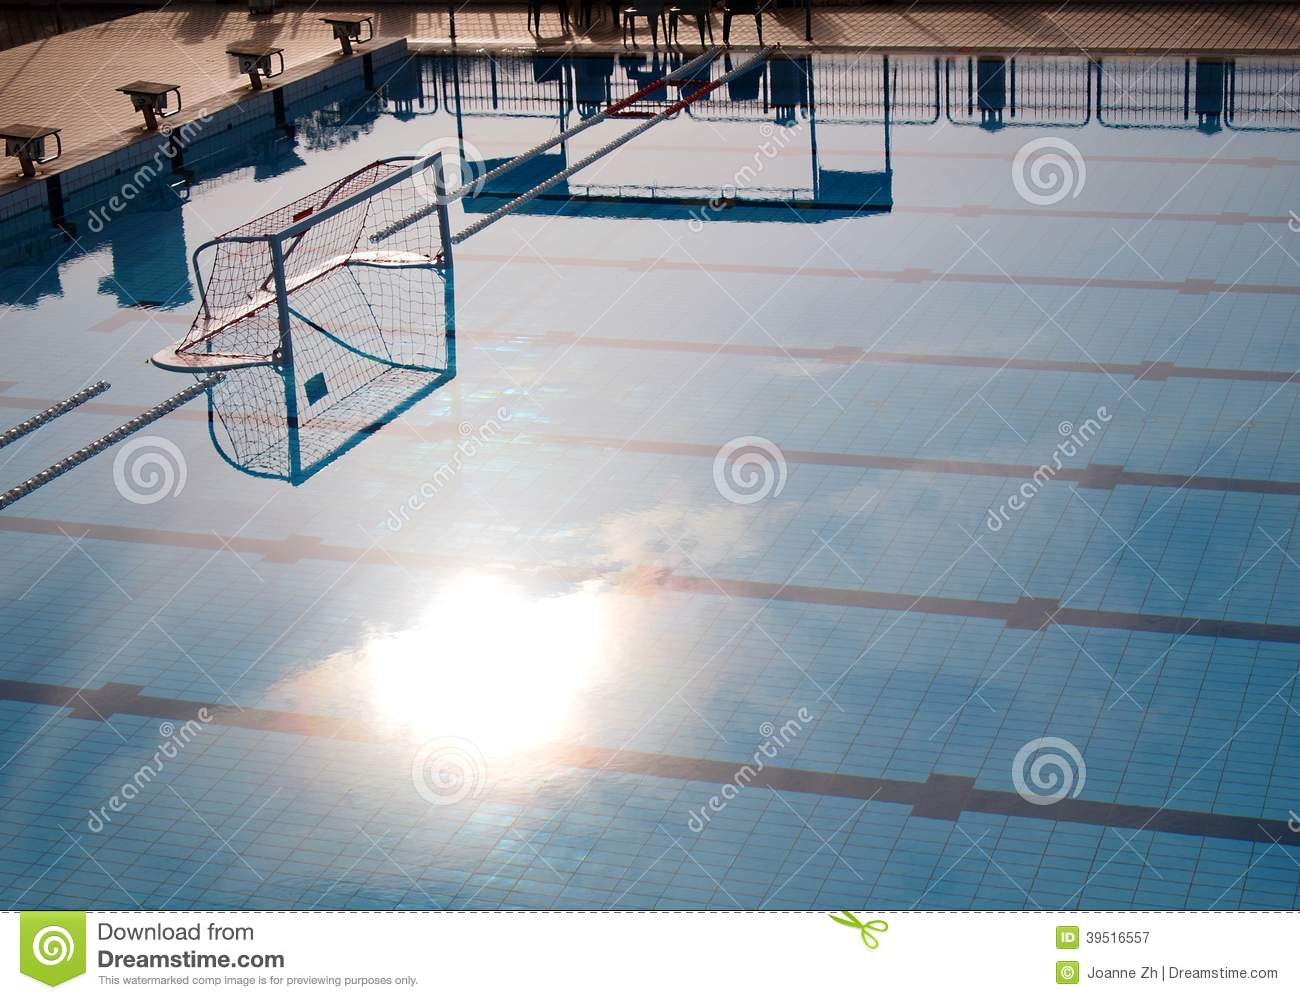 Water Polo Goal Net In Pool With Morning Sunshine Stock Photo Image 39516557